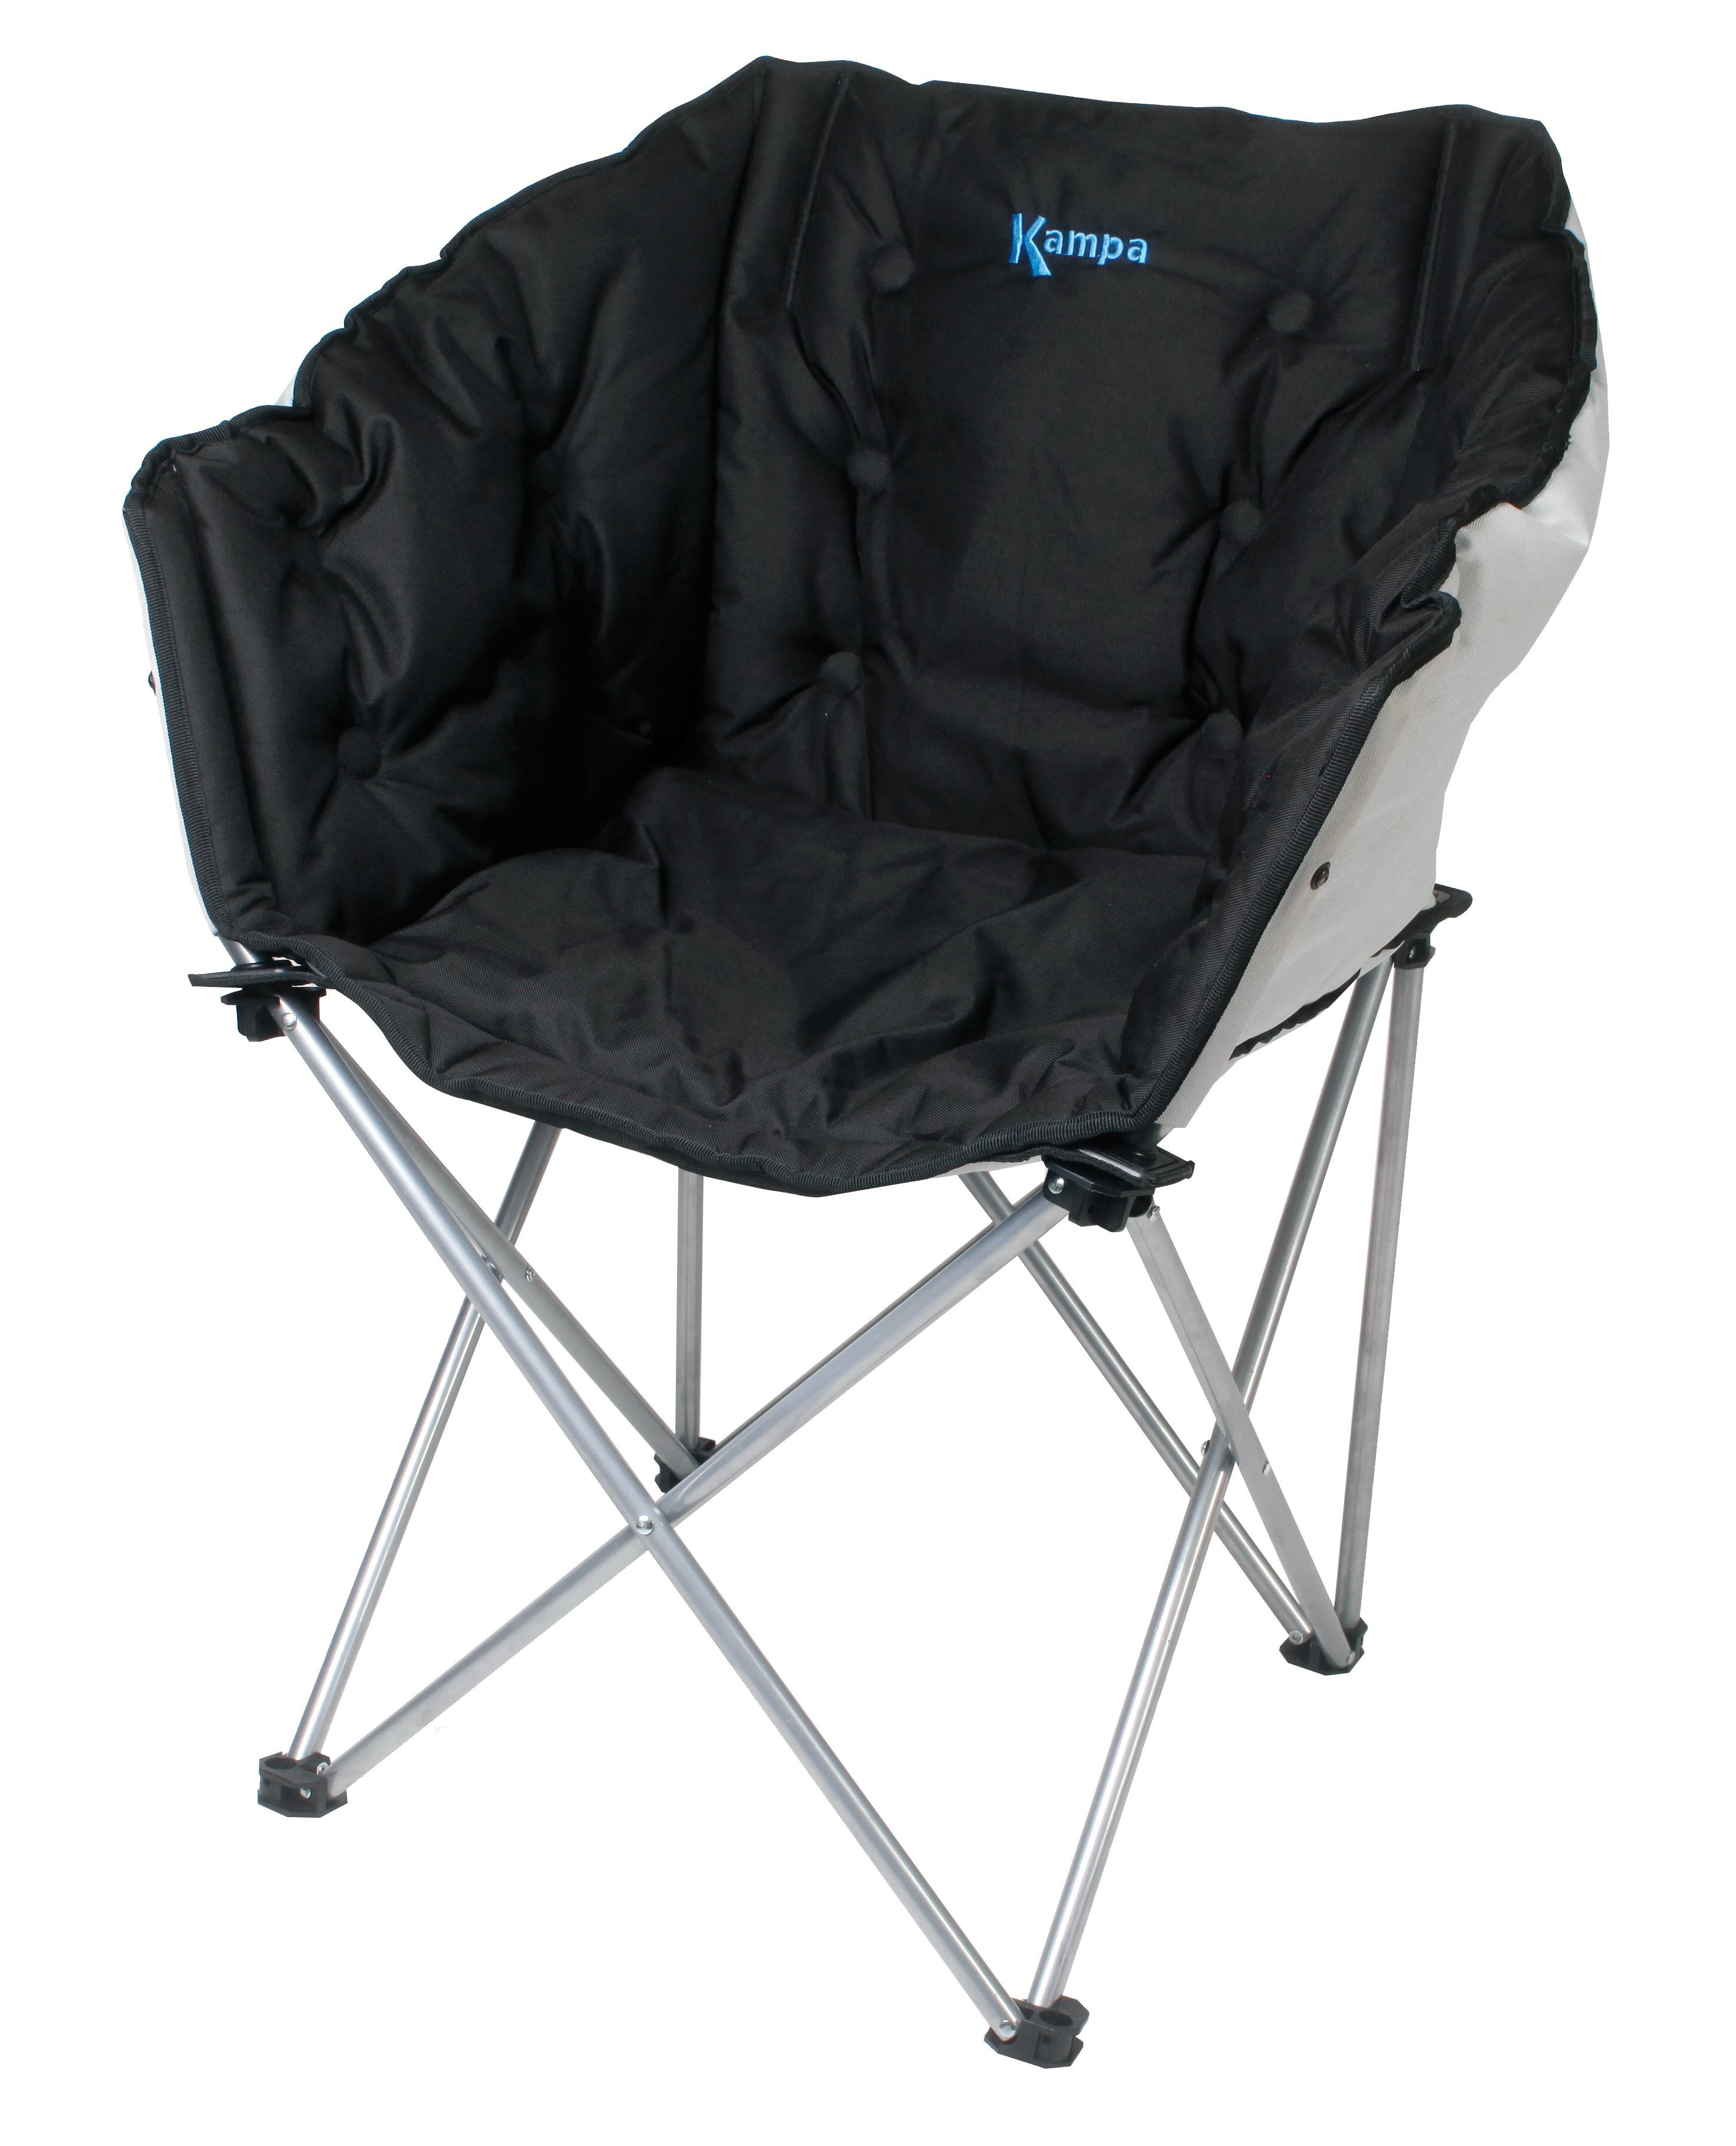 Kampa Tub Chair from Kampa for £25.00